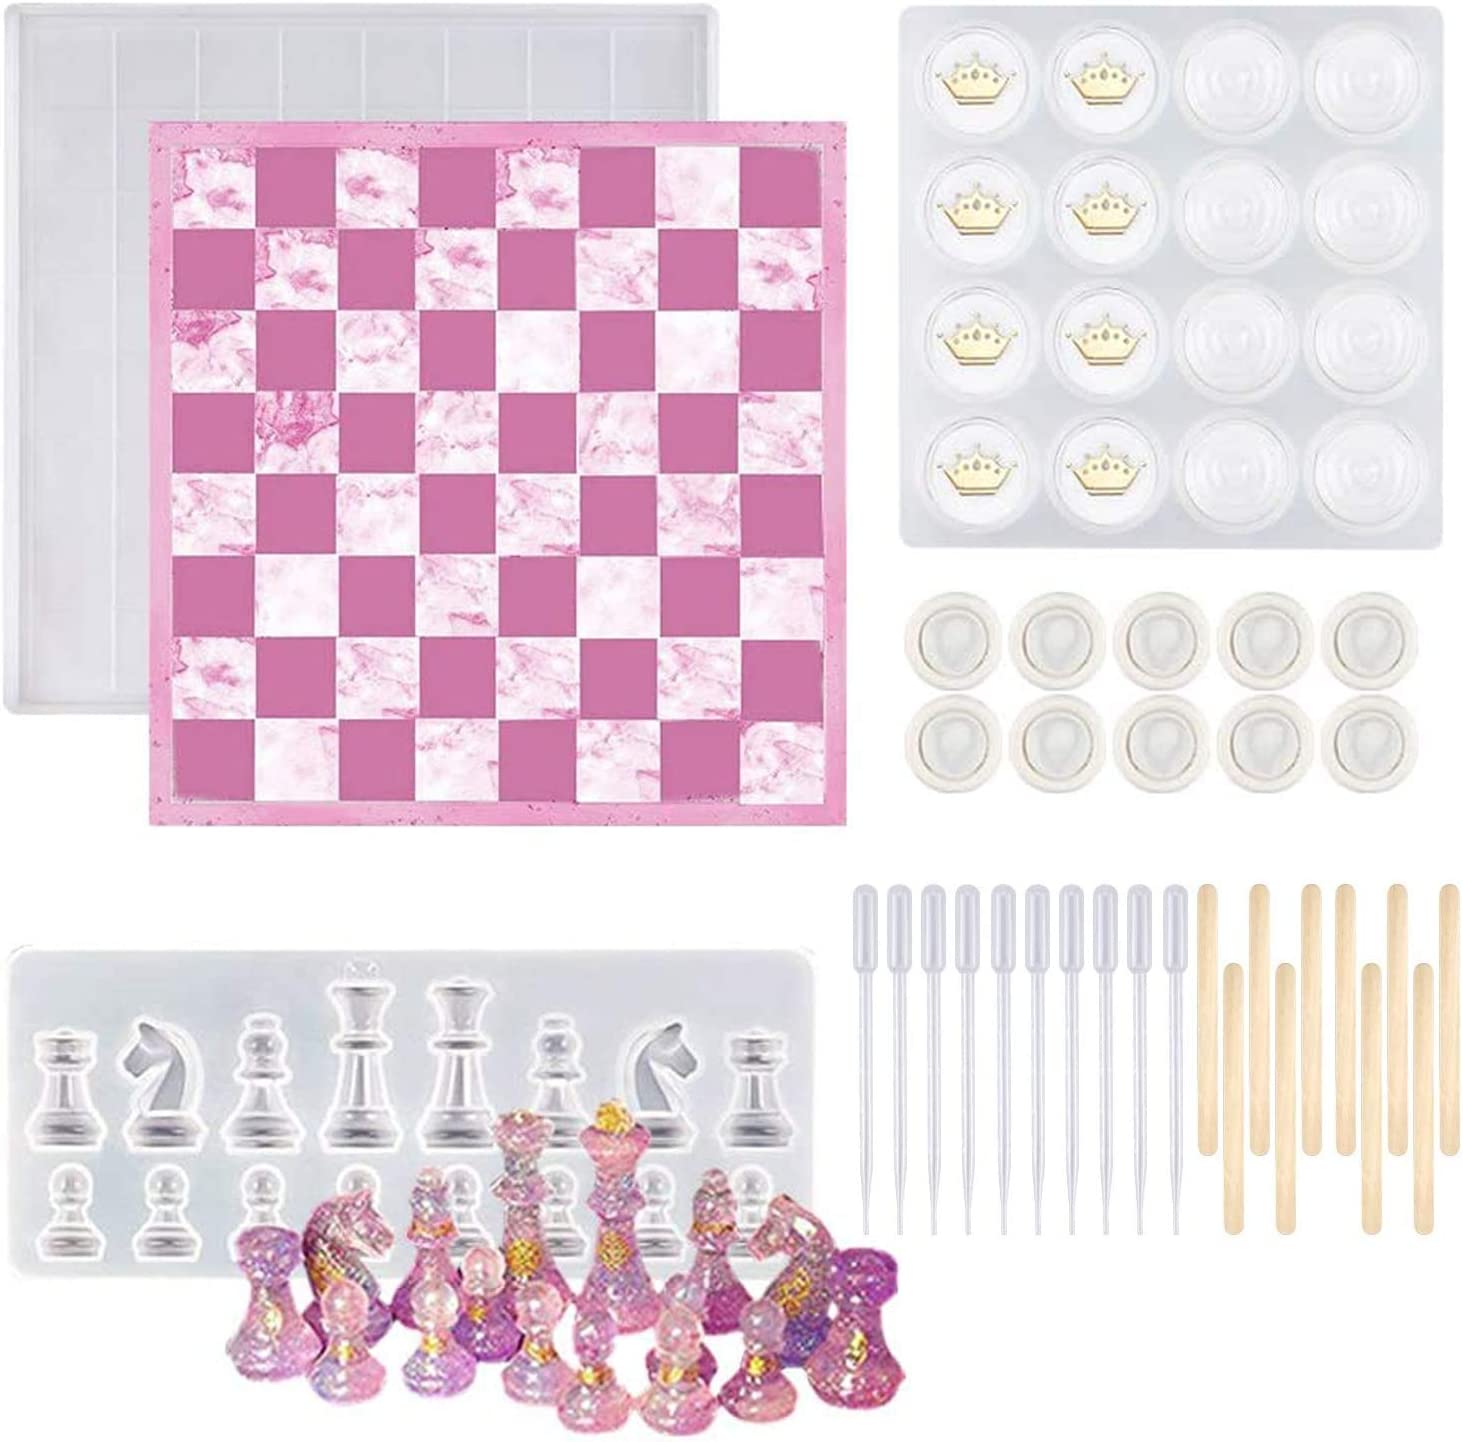 LTBLBY Chess Board Silicone Popular standard Financial sales sale Resin 33PCS Checker Molds S 3D